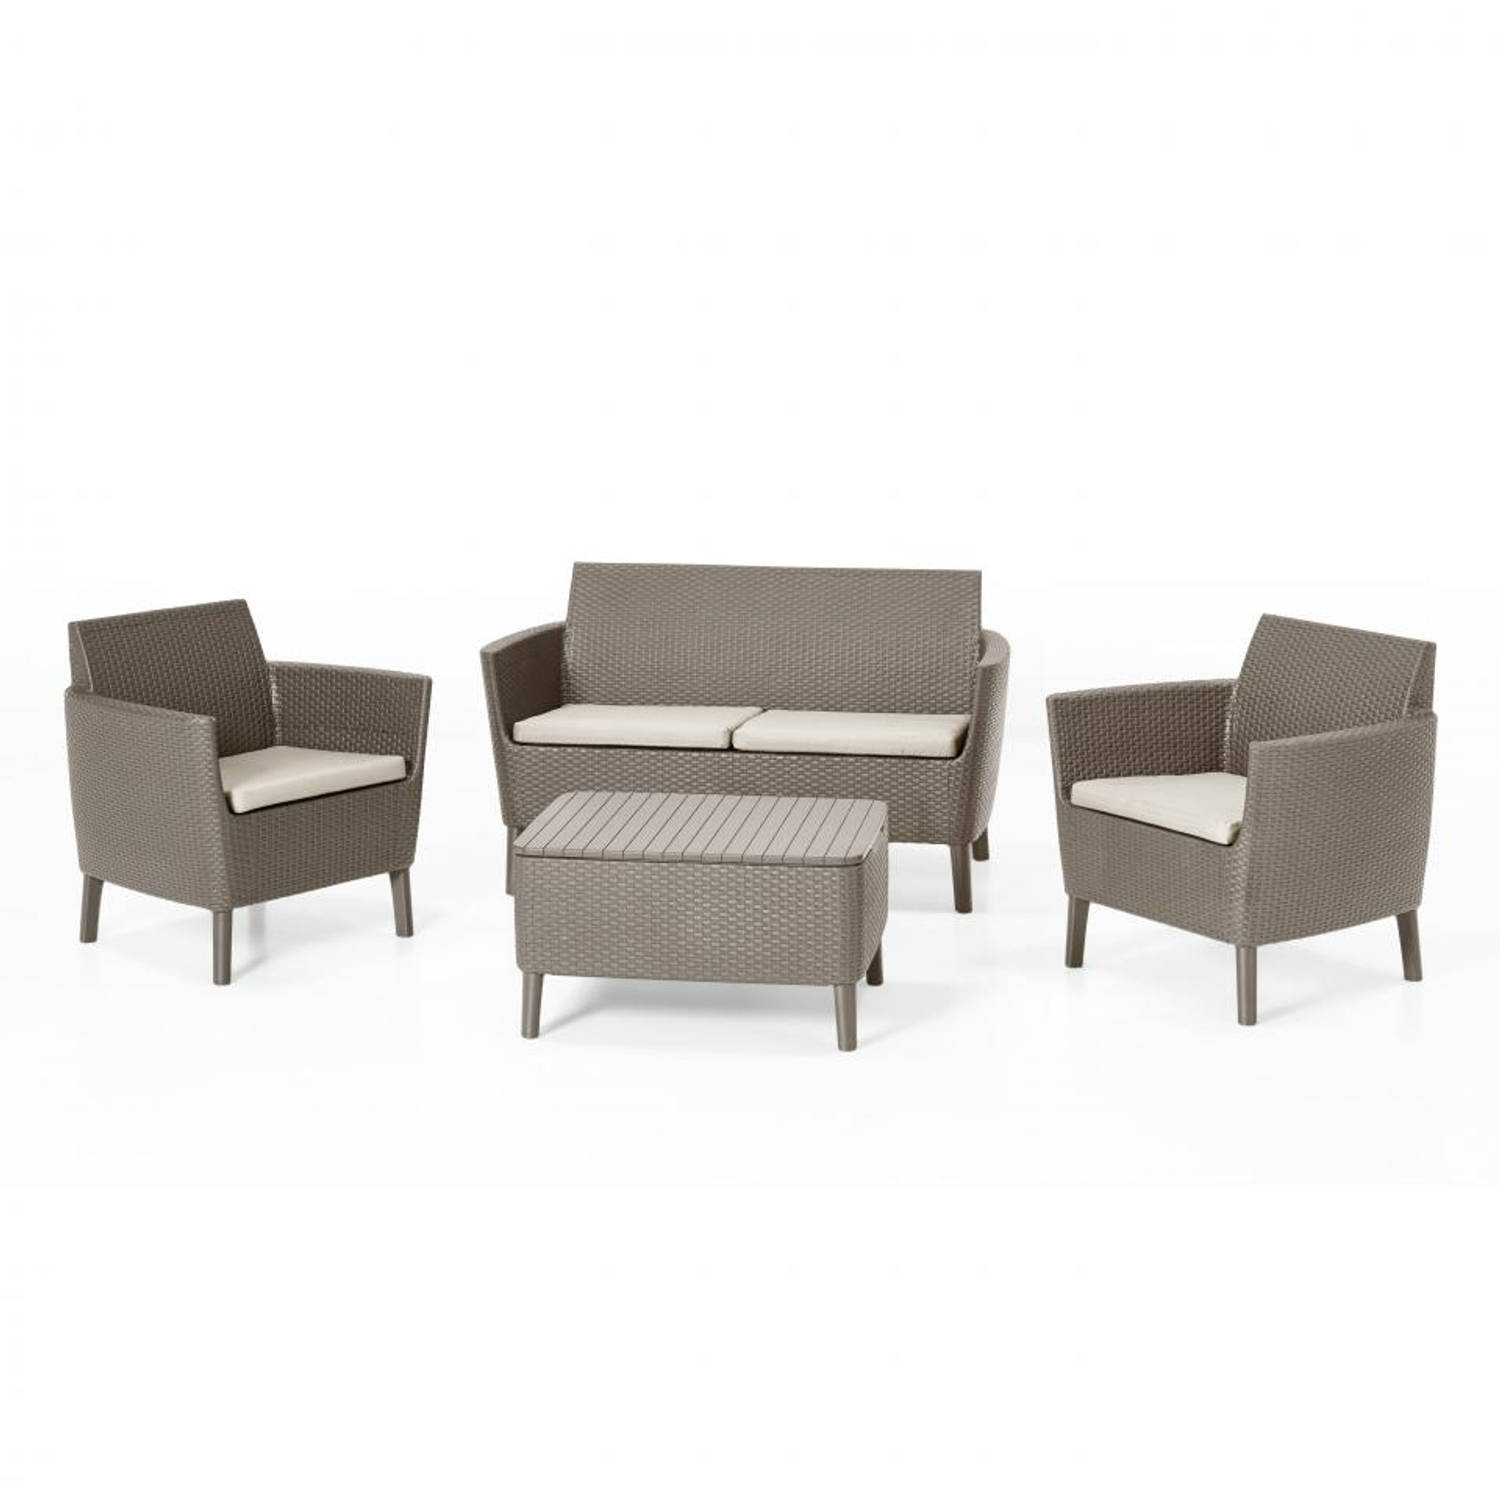 Allibert loungeset Salemo cappucino